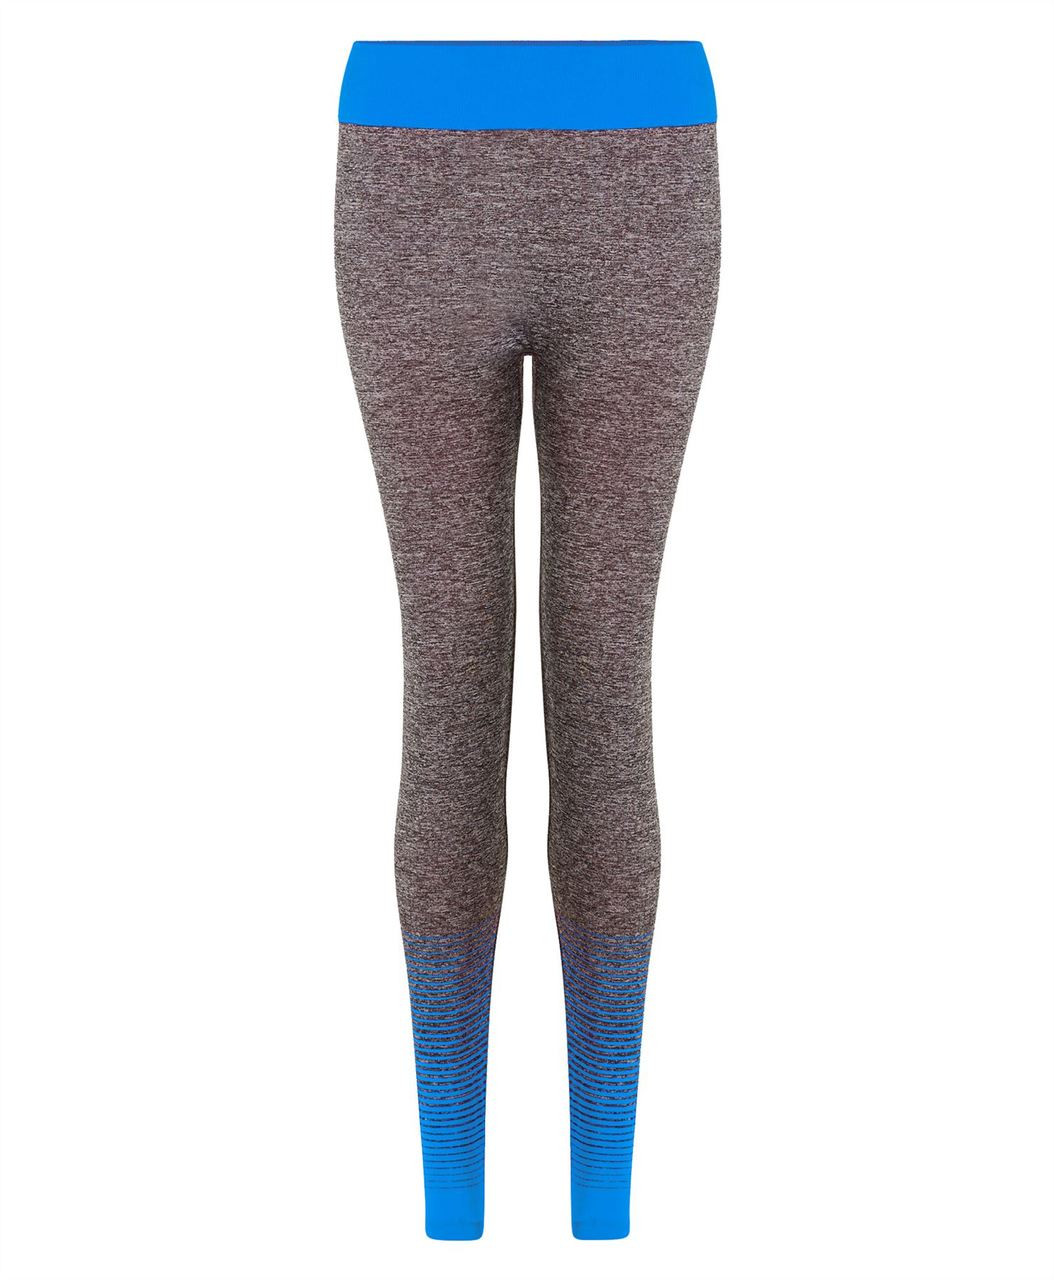 a74d69f7e5 Ladies Full Length Leggings in Black, Neon Yellow and Blue